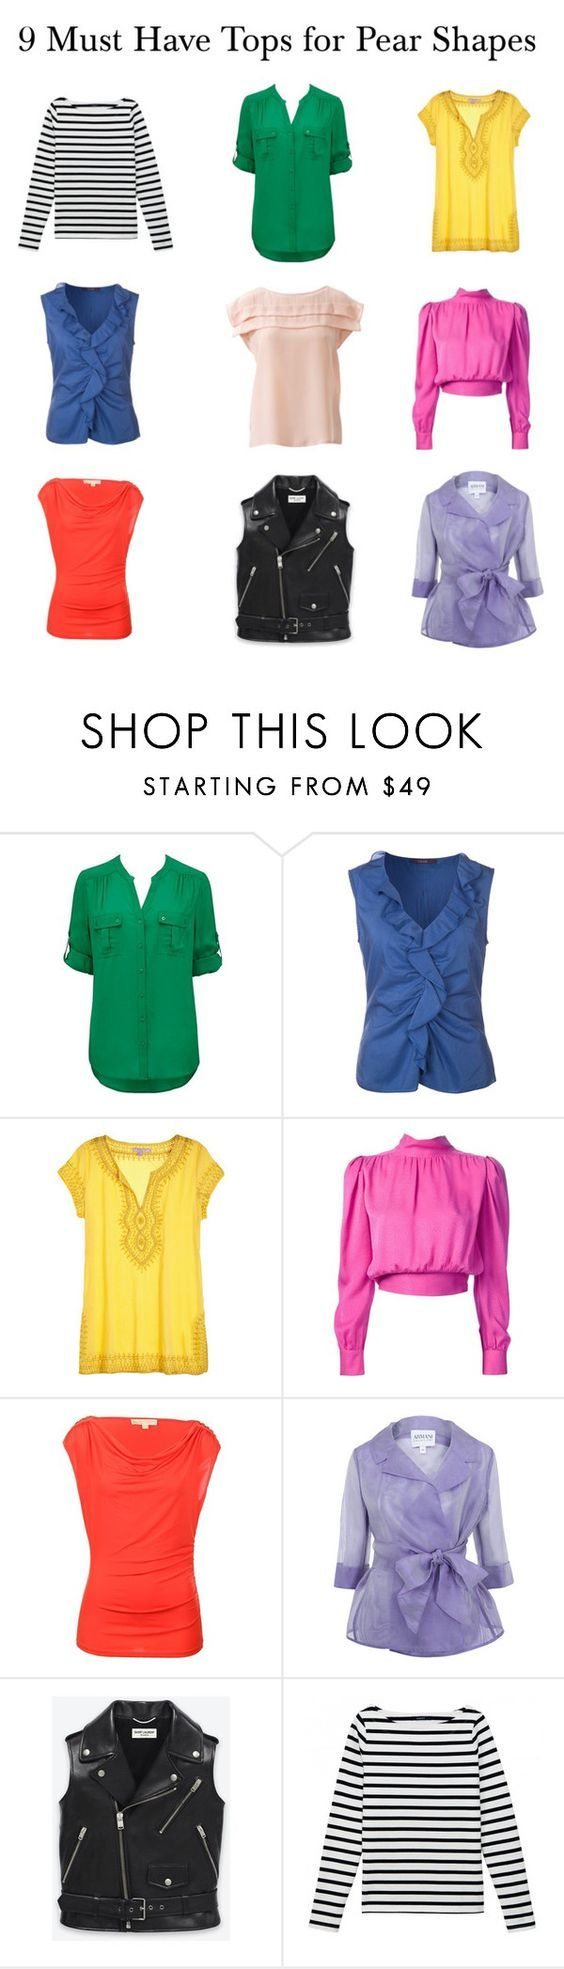 """Tops For Pear Shapes"" by elsasima ❤ liked on Polyvore featuring Forever New, Laurèl, Calypso St. Barth, Yves Saint Laurent, MICHAEL Michael Kors, Armani Collezioni, women's clothing, women's fashion, women and female"